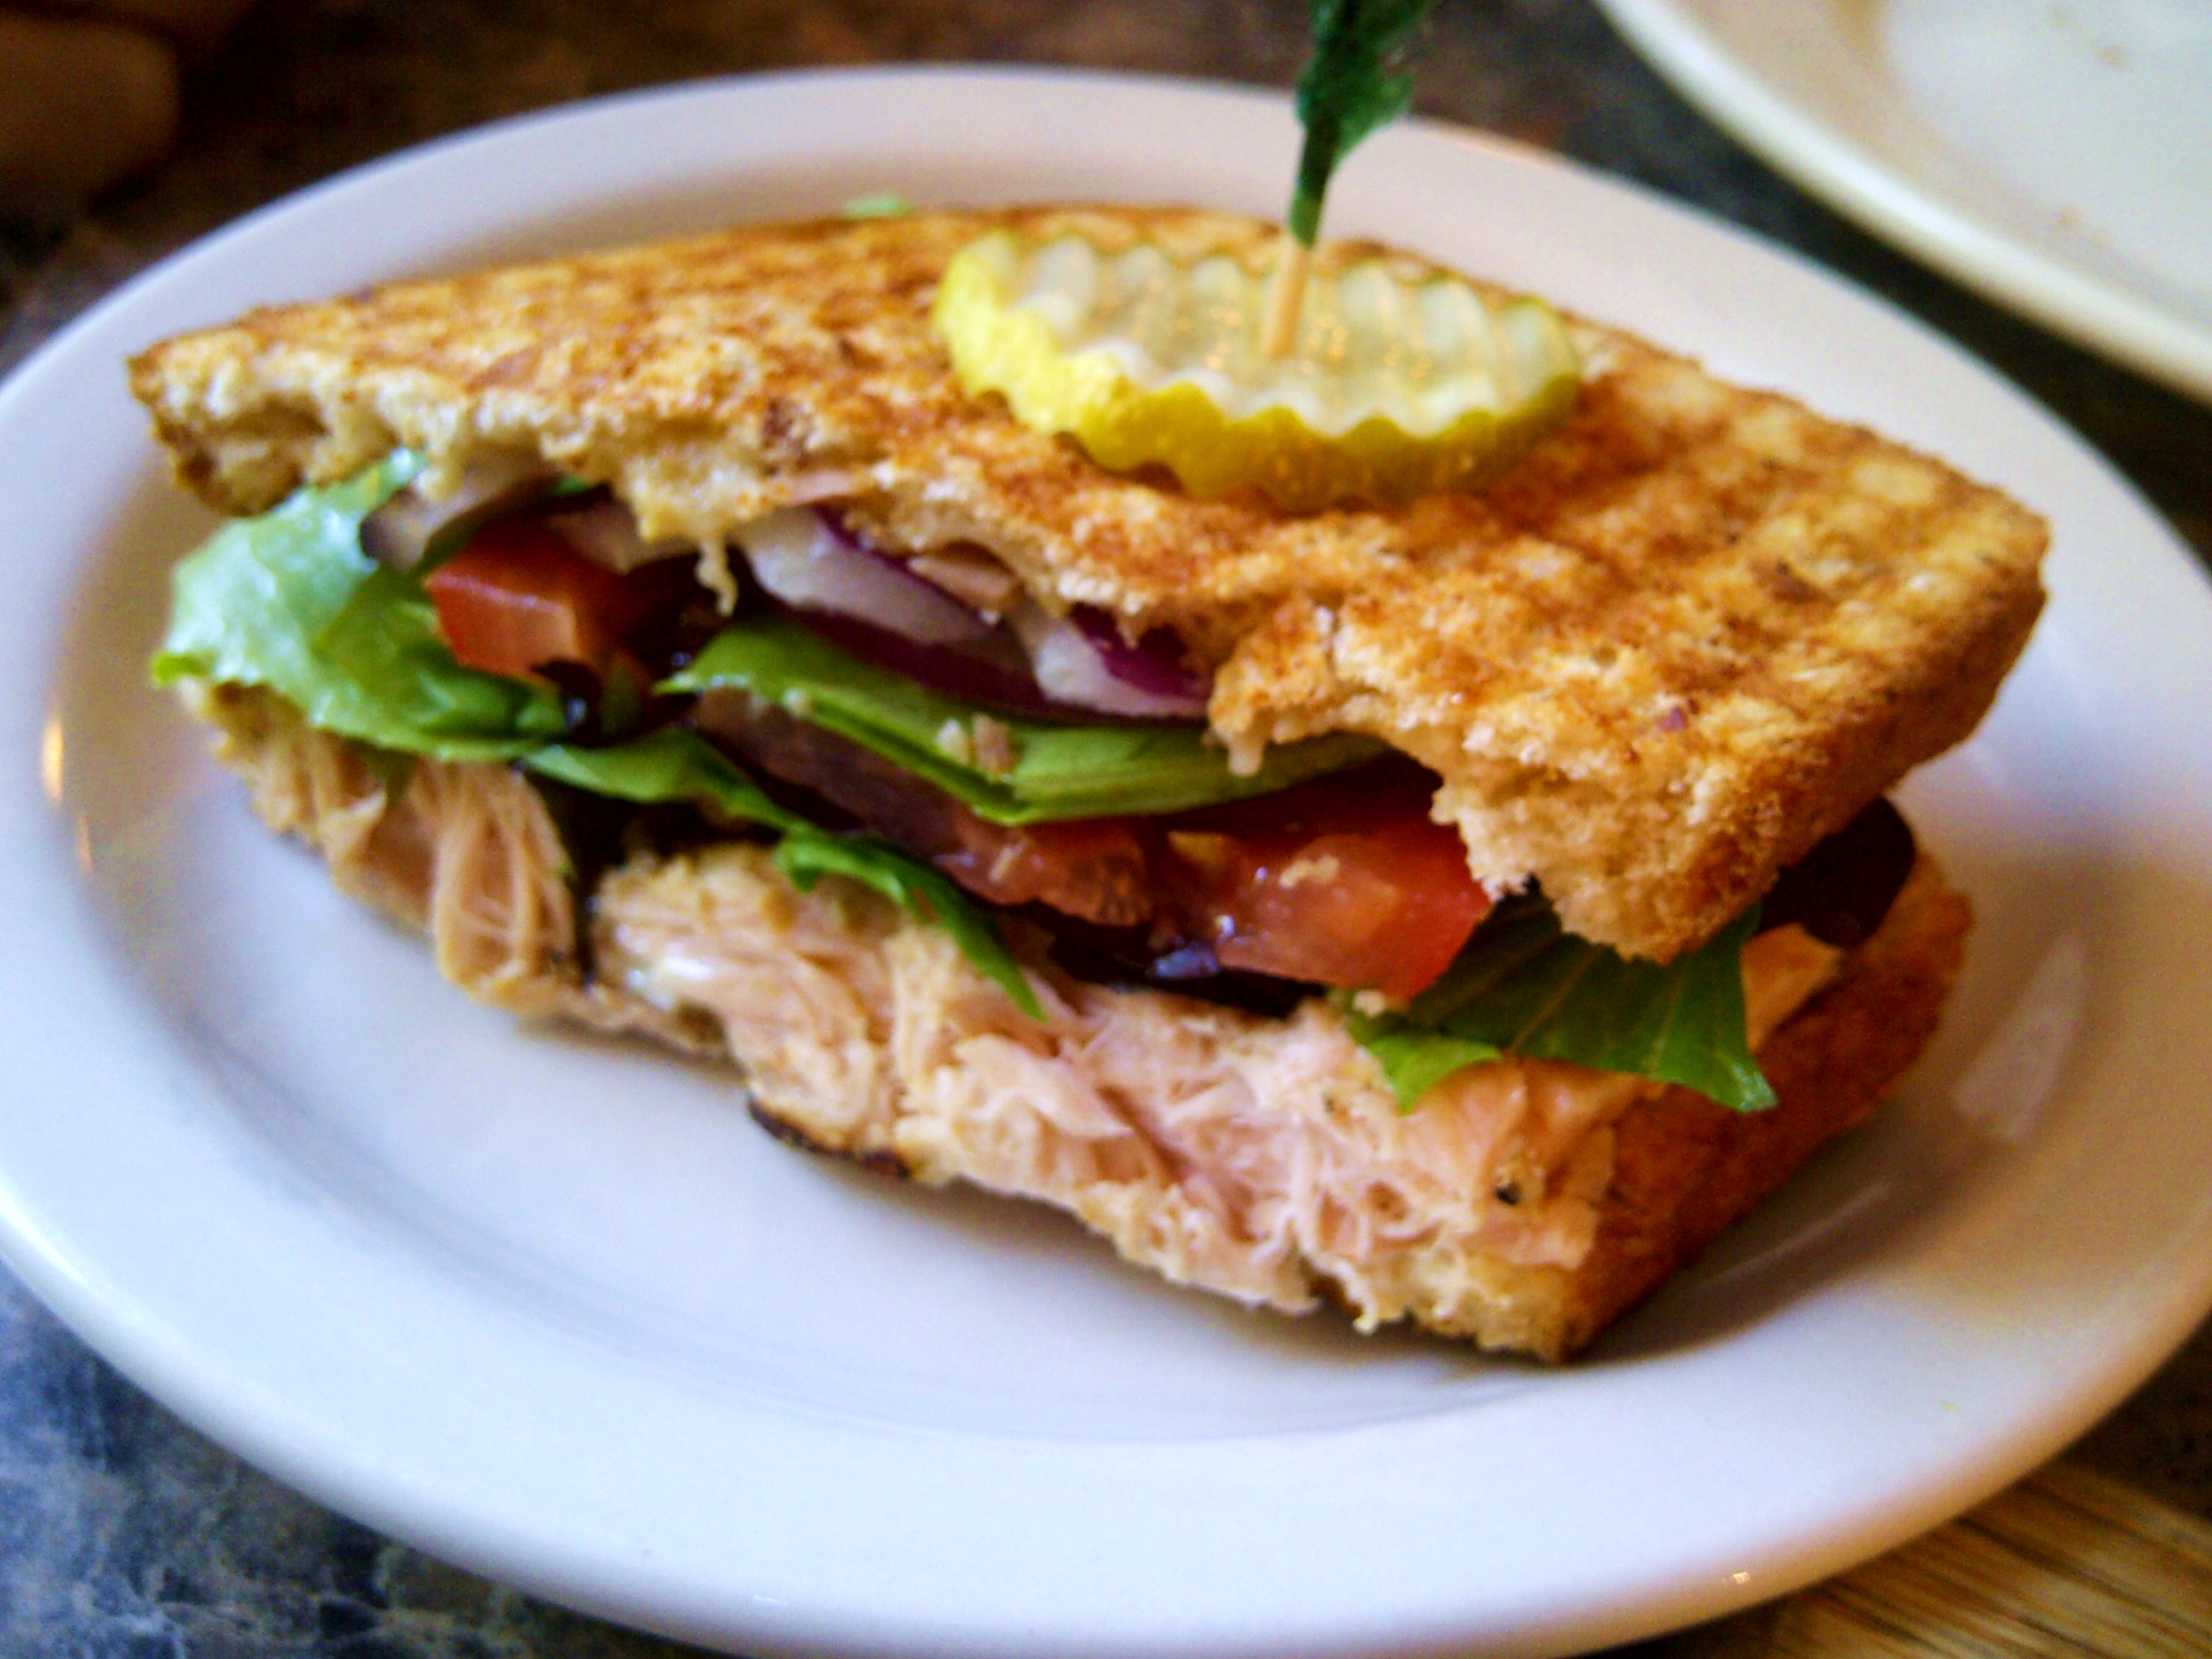 grilled salmon and brie panini. Black Bedroom Furniture Sets. Home Design Ideas